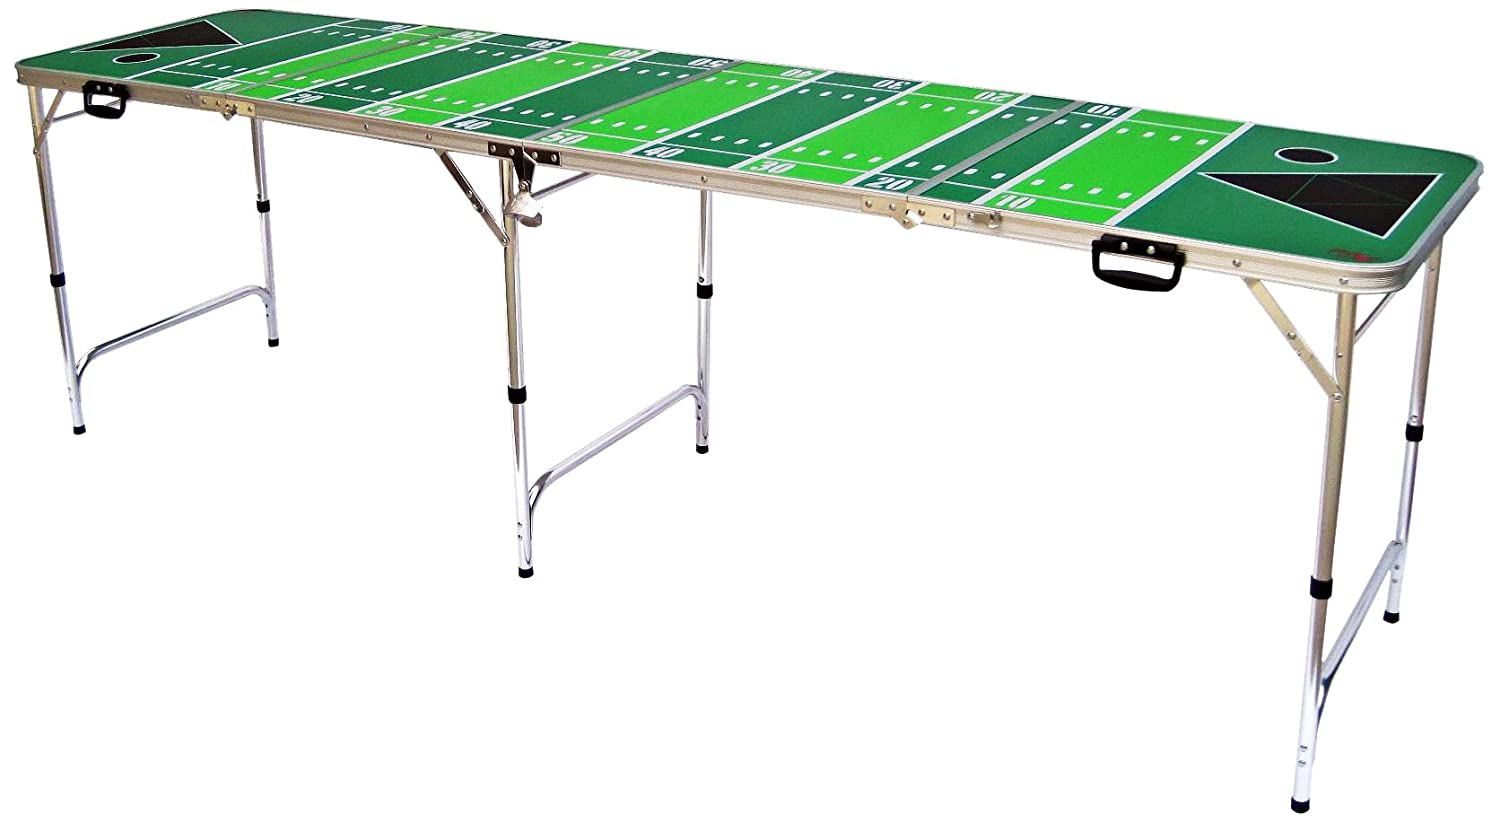 Beer pong table dimensions - 25 Designs Custom 8ft Beer Pong Tables Specialty